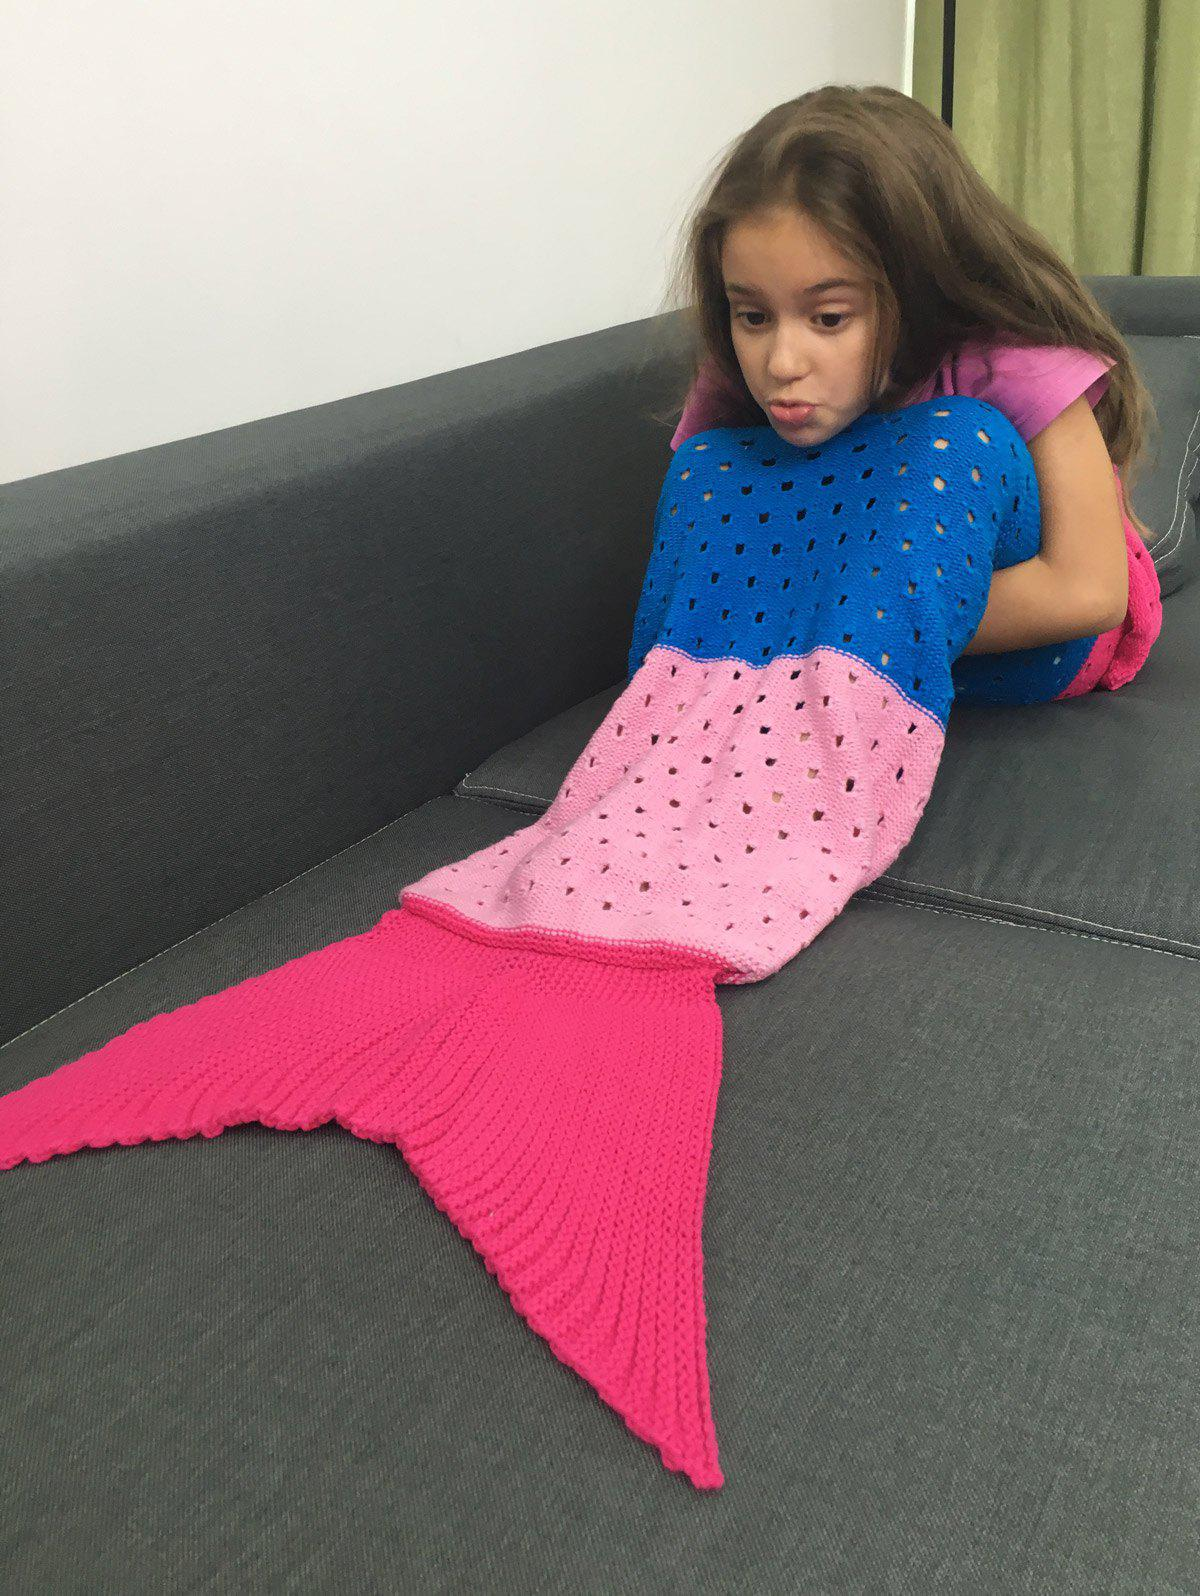 Comfortable Color Block Crochet Knitting Mermaid Tail Blanket For Kids - COLORMIX M